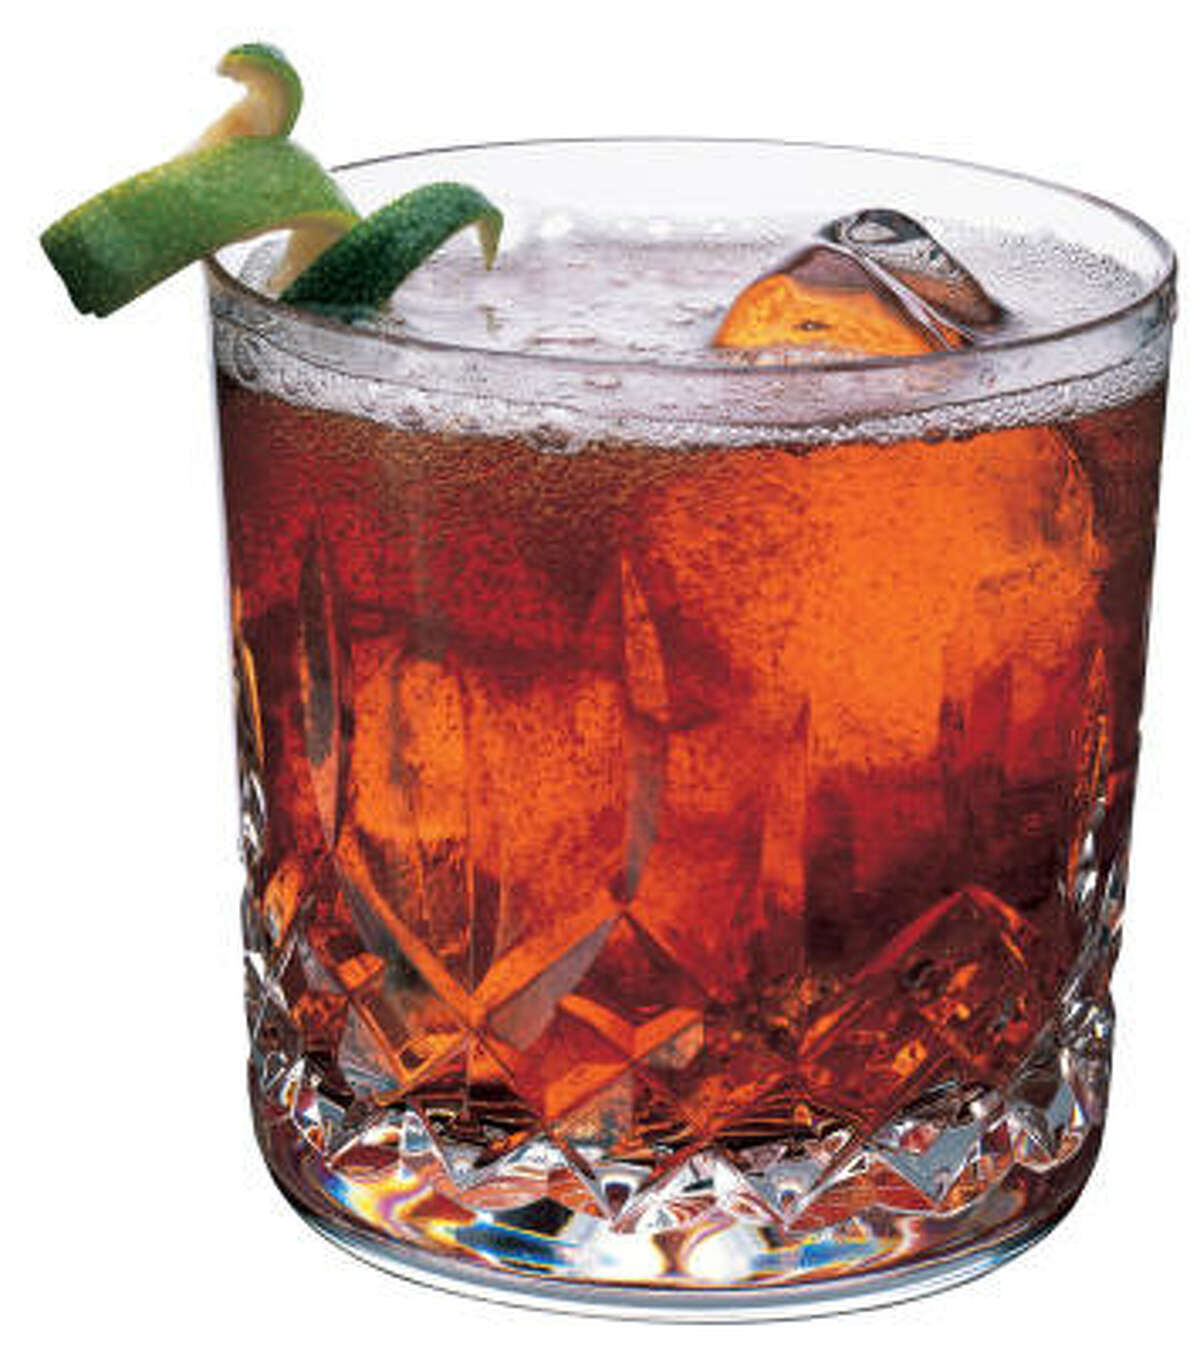 Rum and coke: 369 calories per 12-ounce serving Source: Family Circle